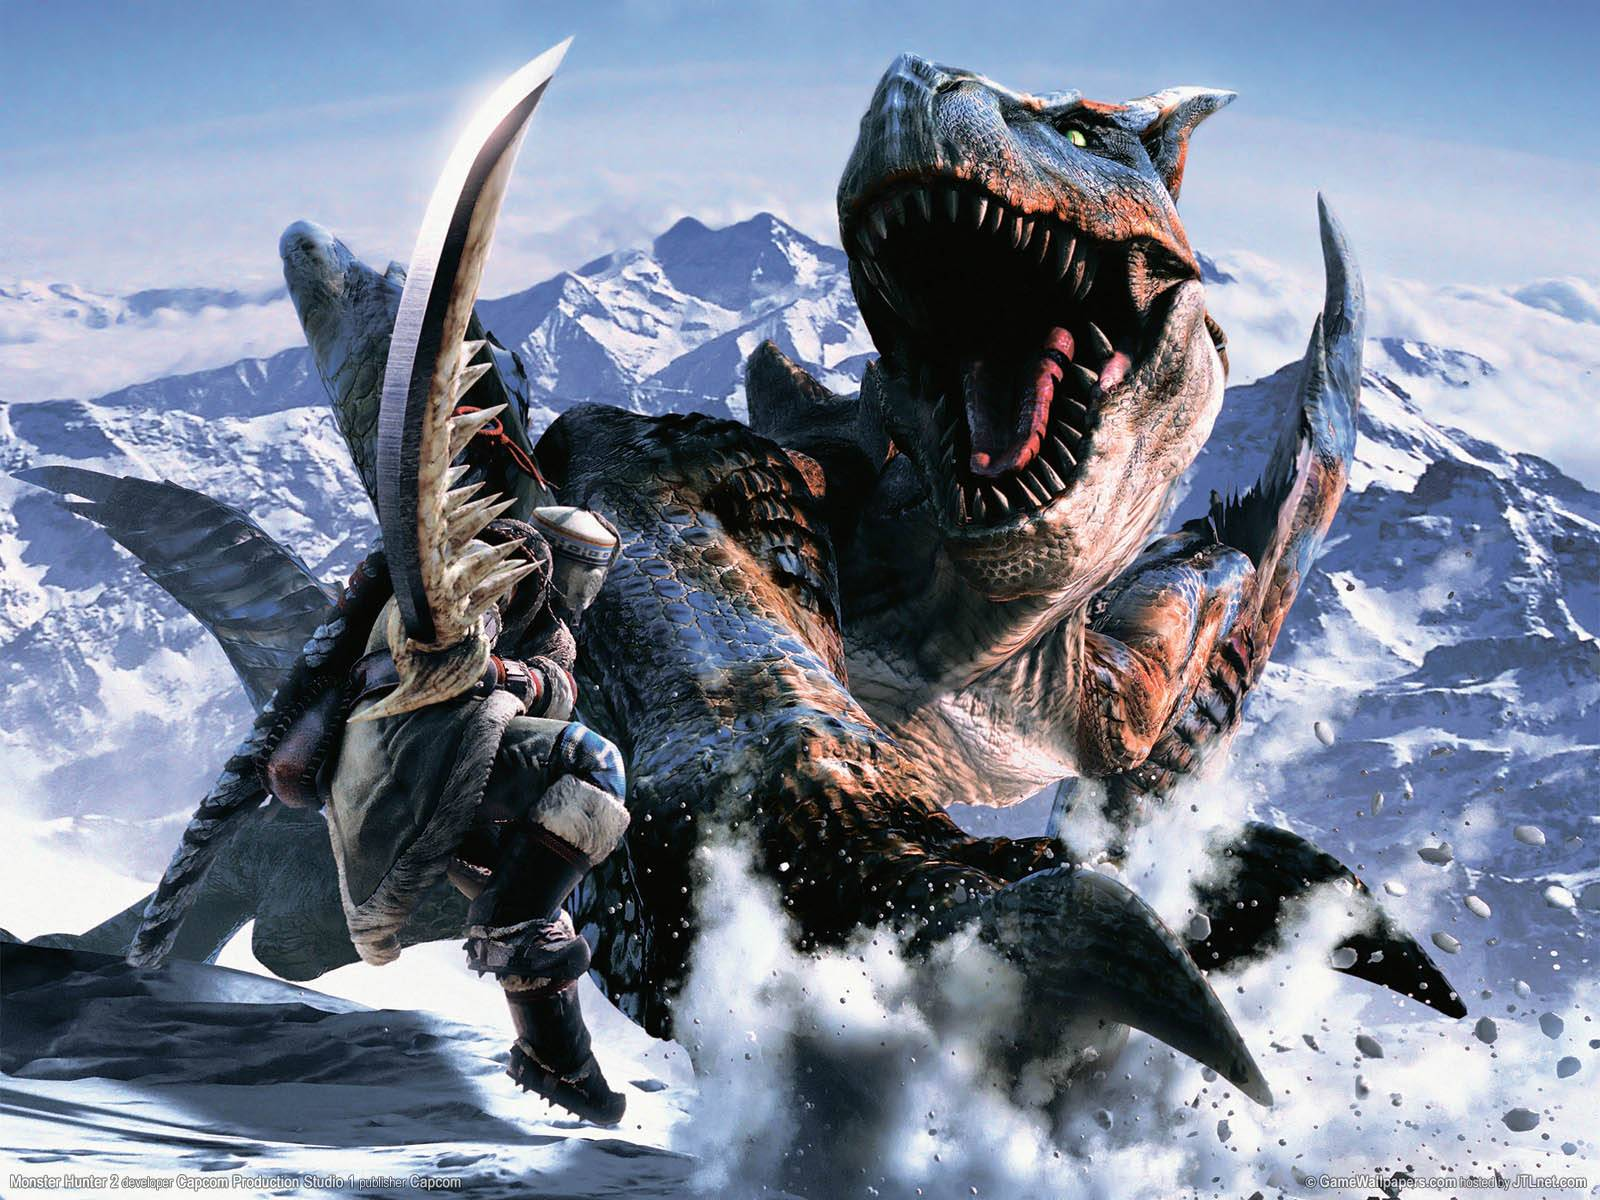 Monster Hunter 4 wallpaper GamingBoltcom Video Game News Reviews 1600x1200